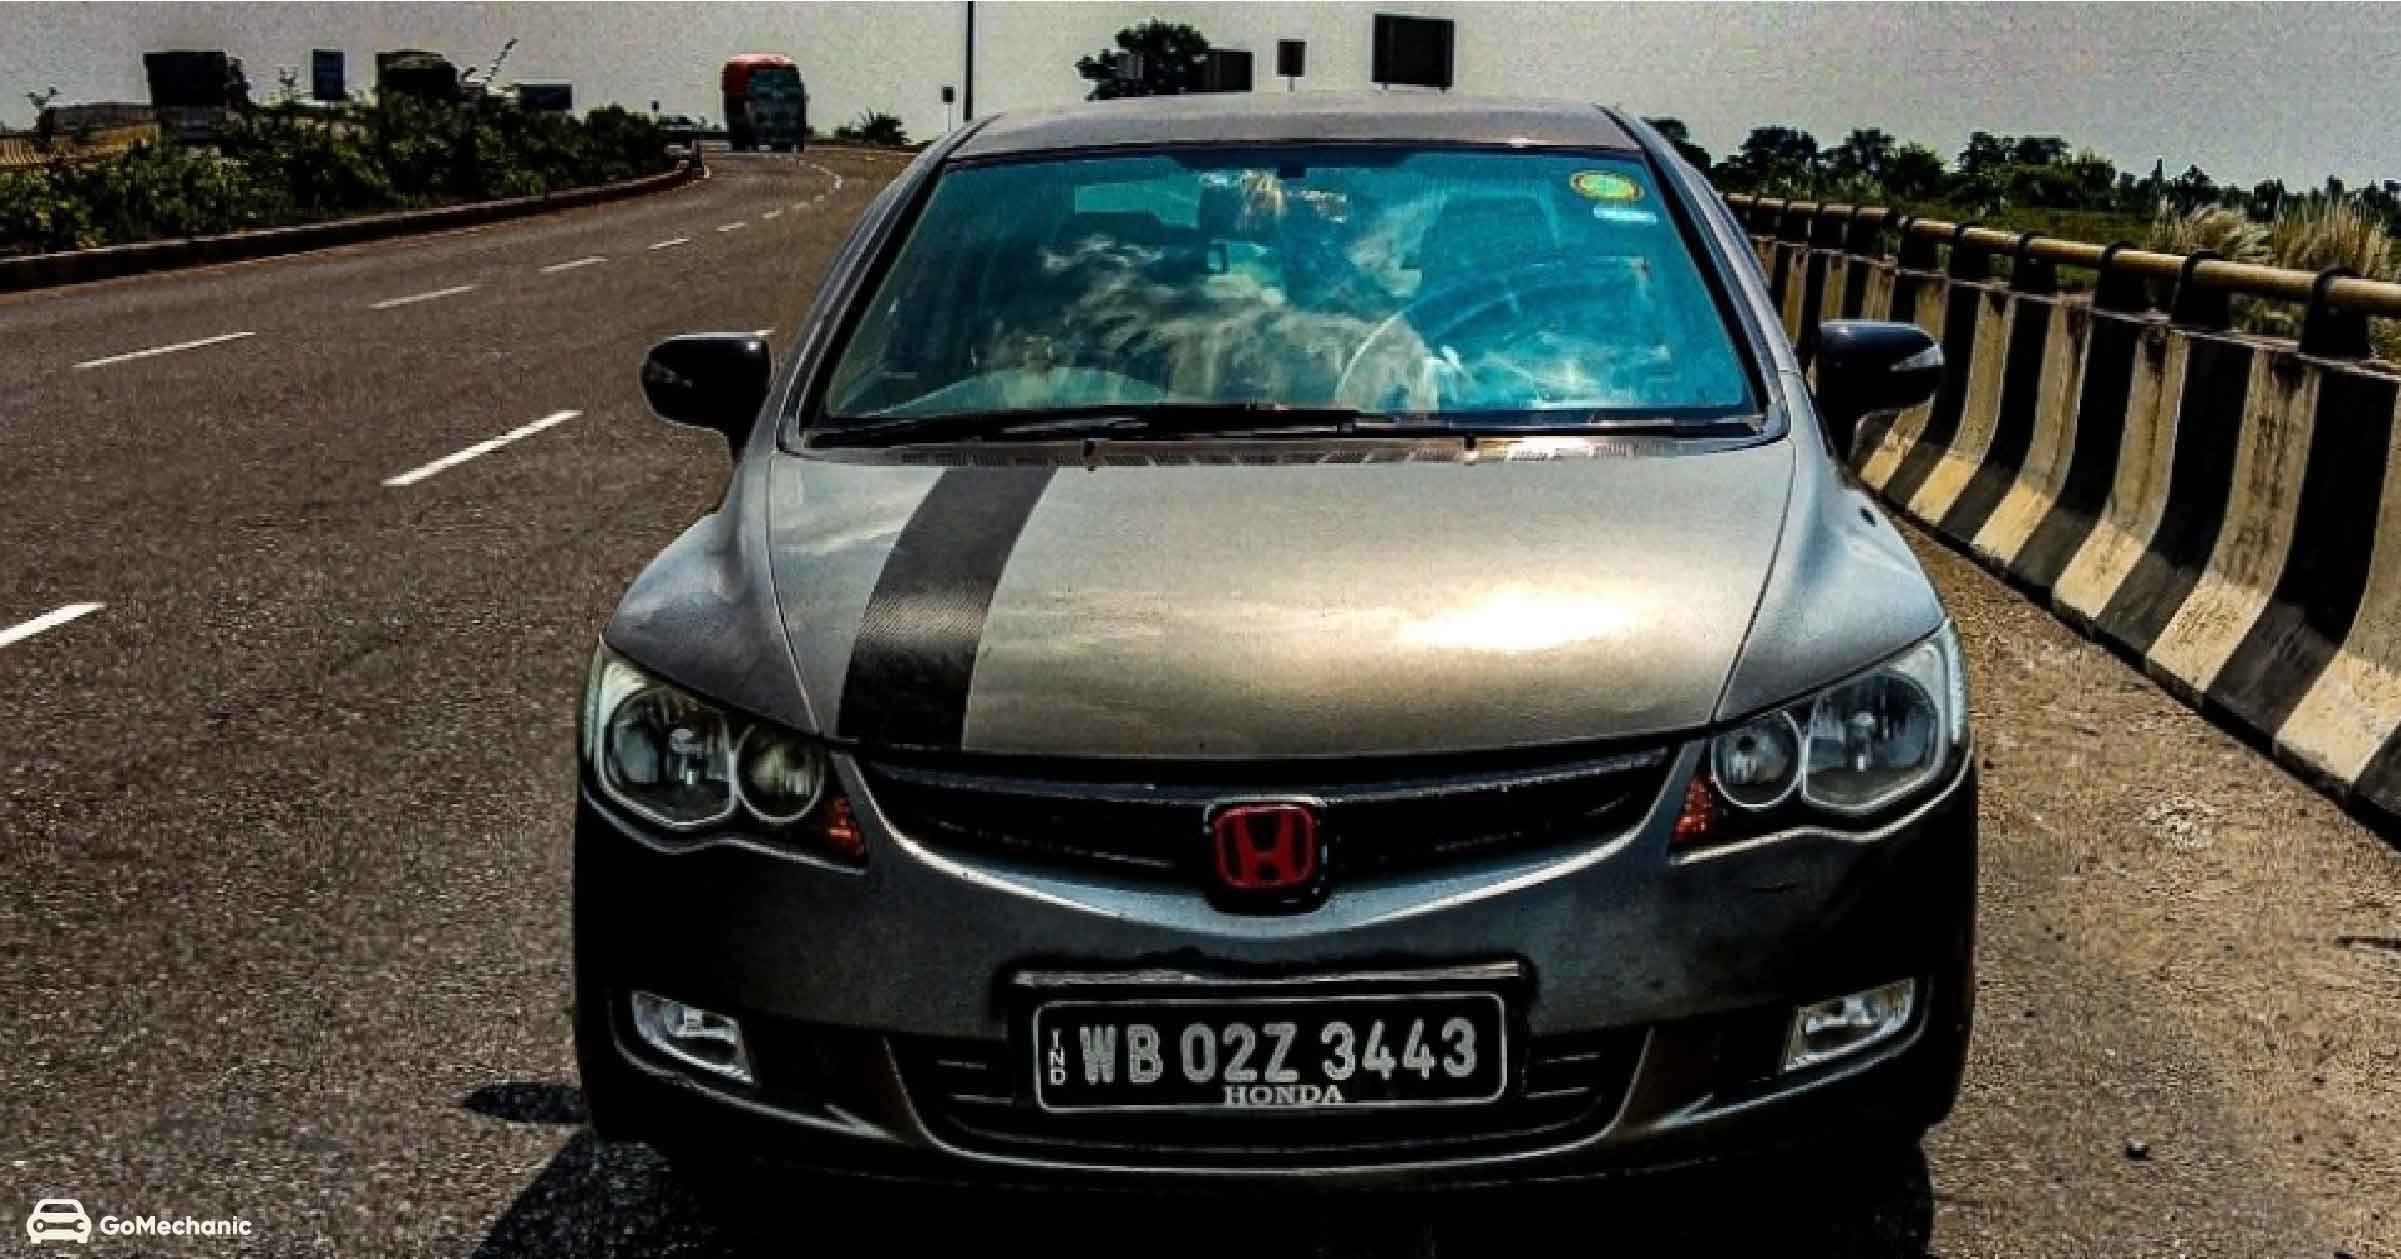 This Modified Honda Civic Is The Ultimate Sleeper With Mods Worth 5 Lakhs